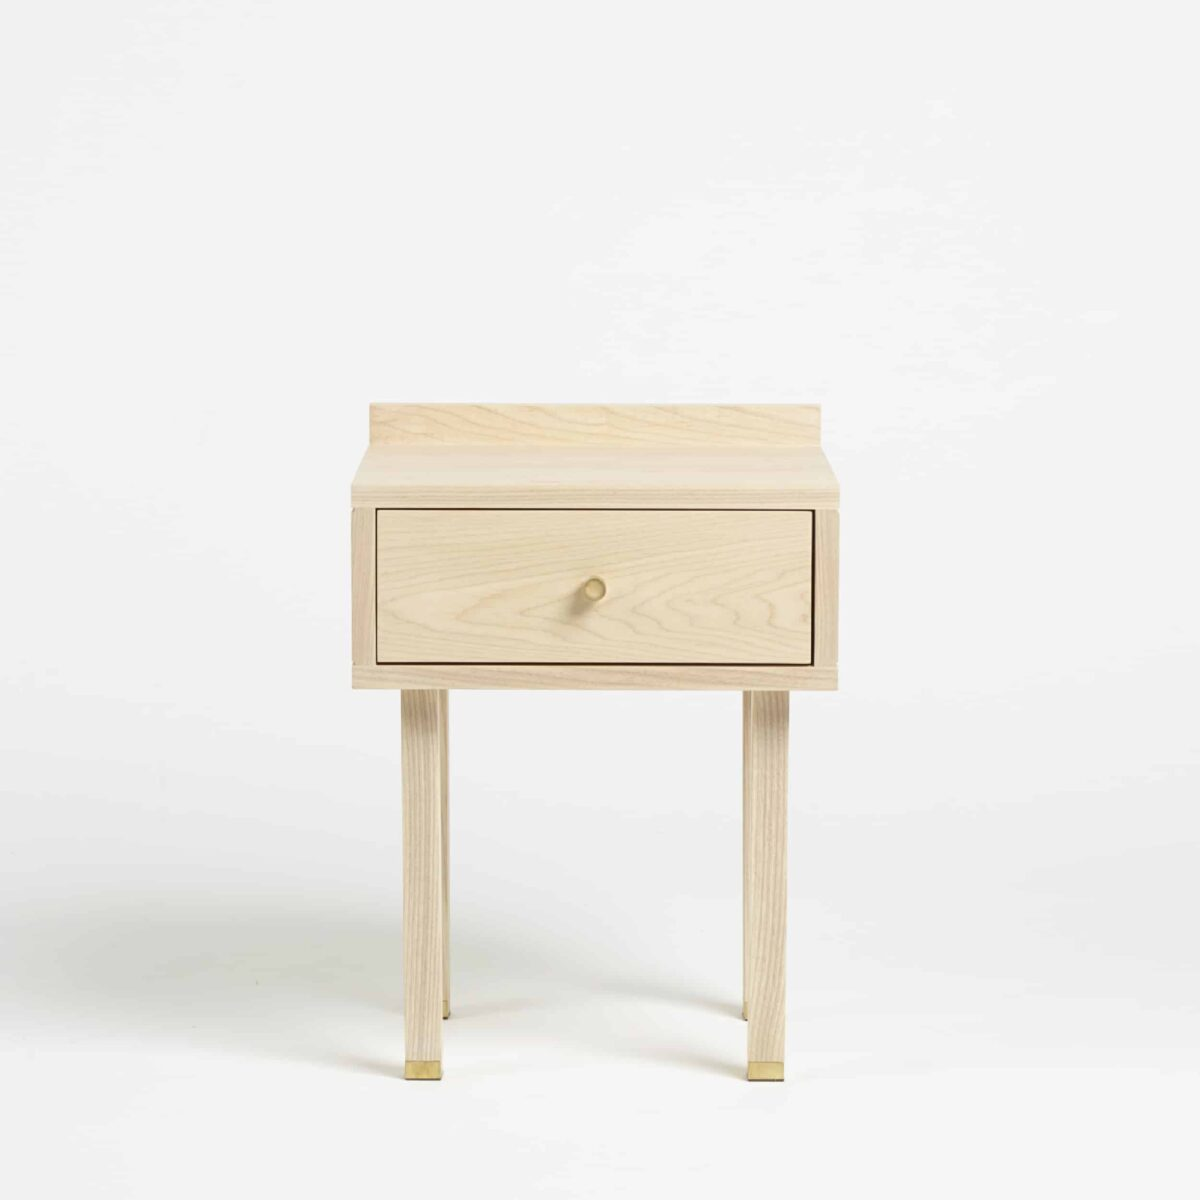 Sleep_Series_Bedside_Table_Two_001